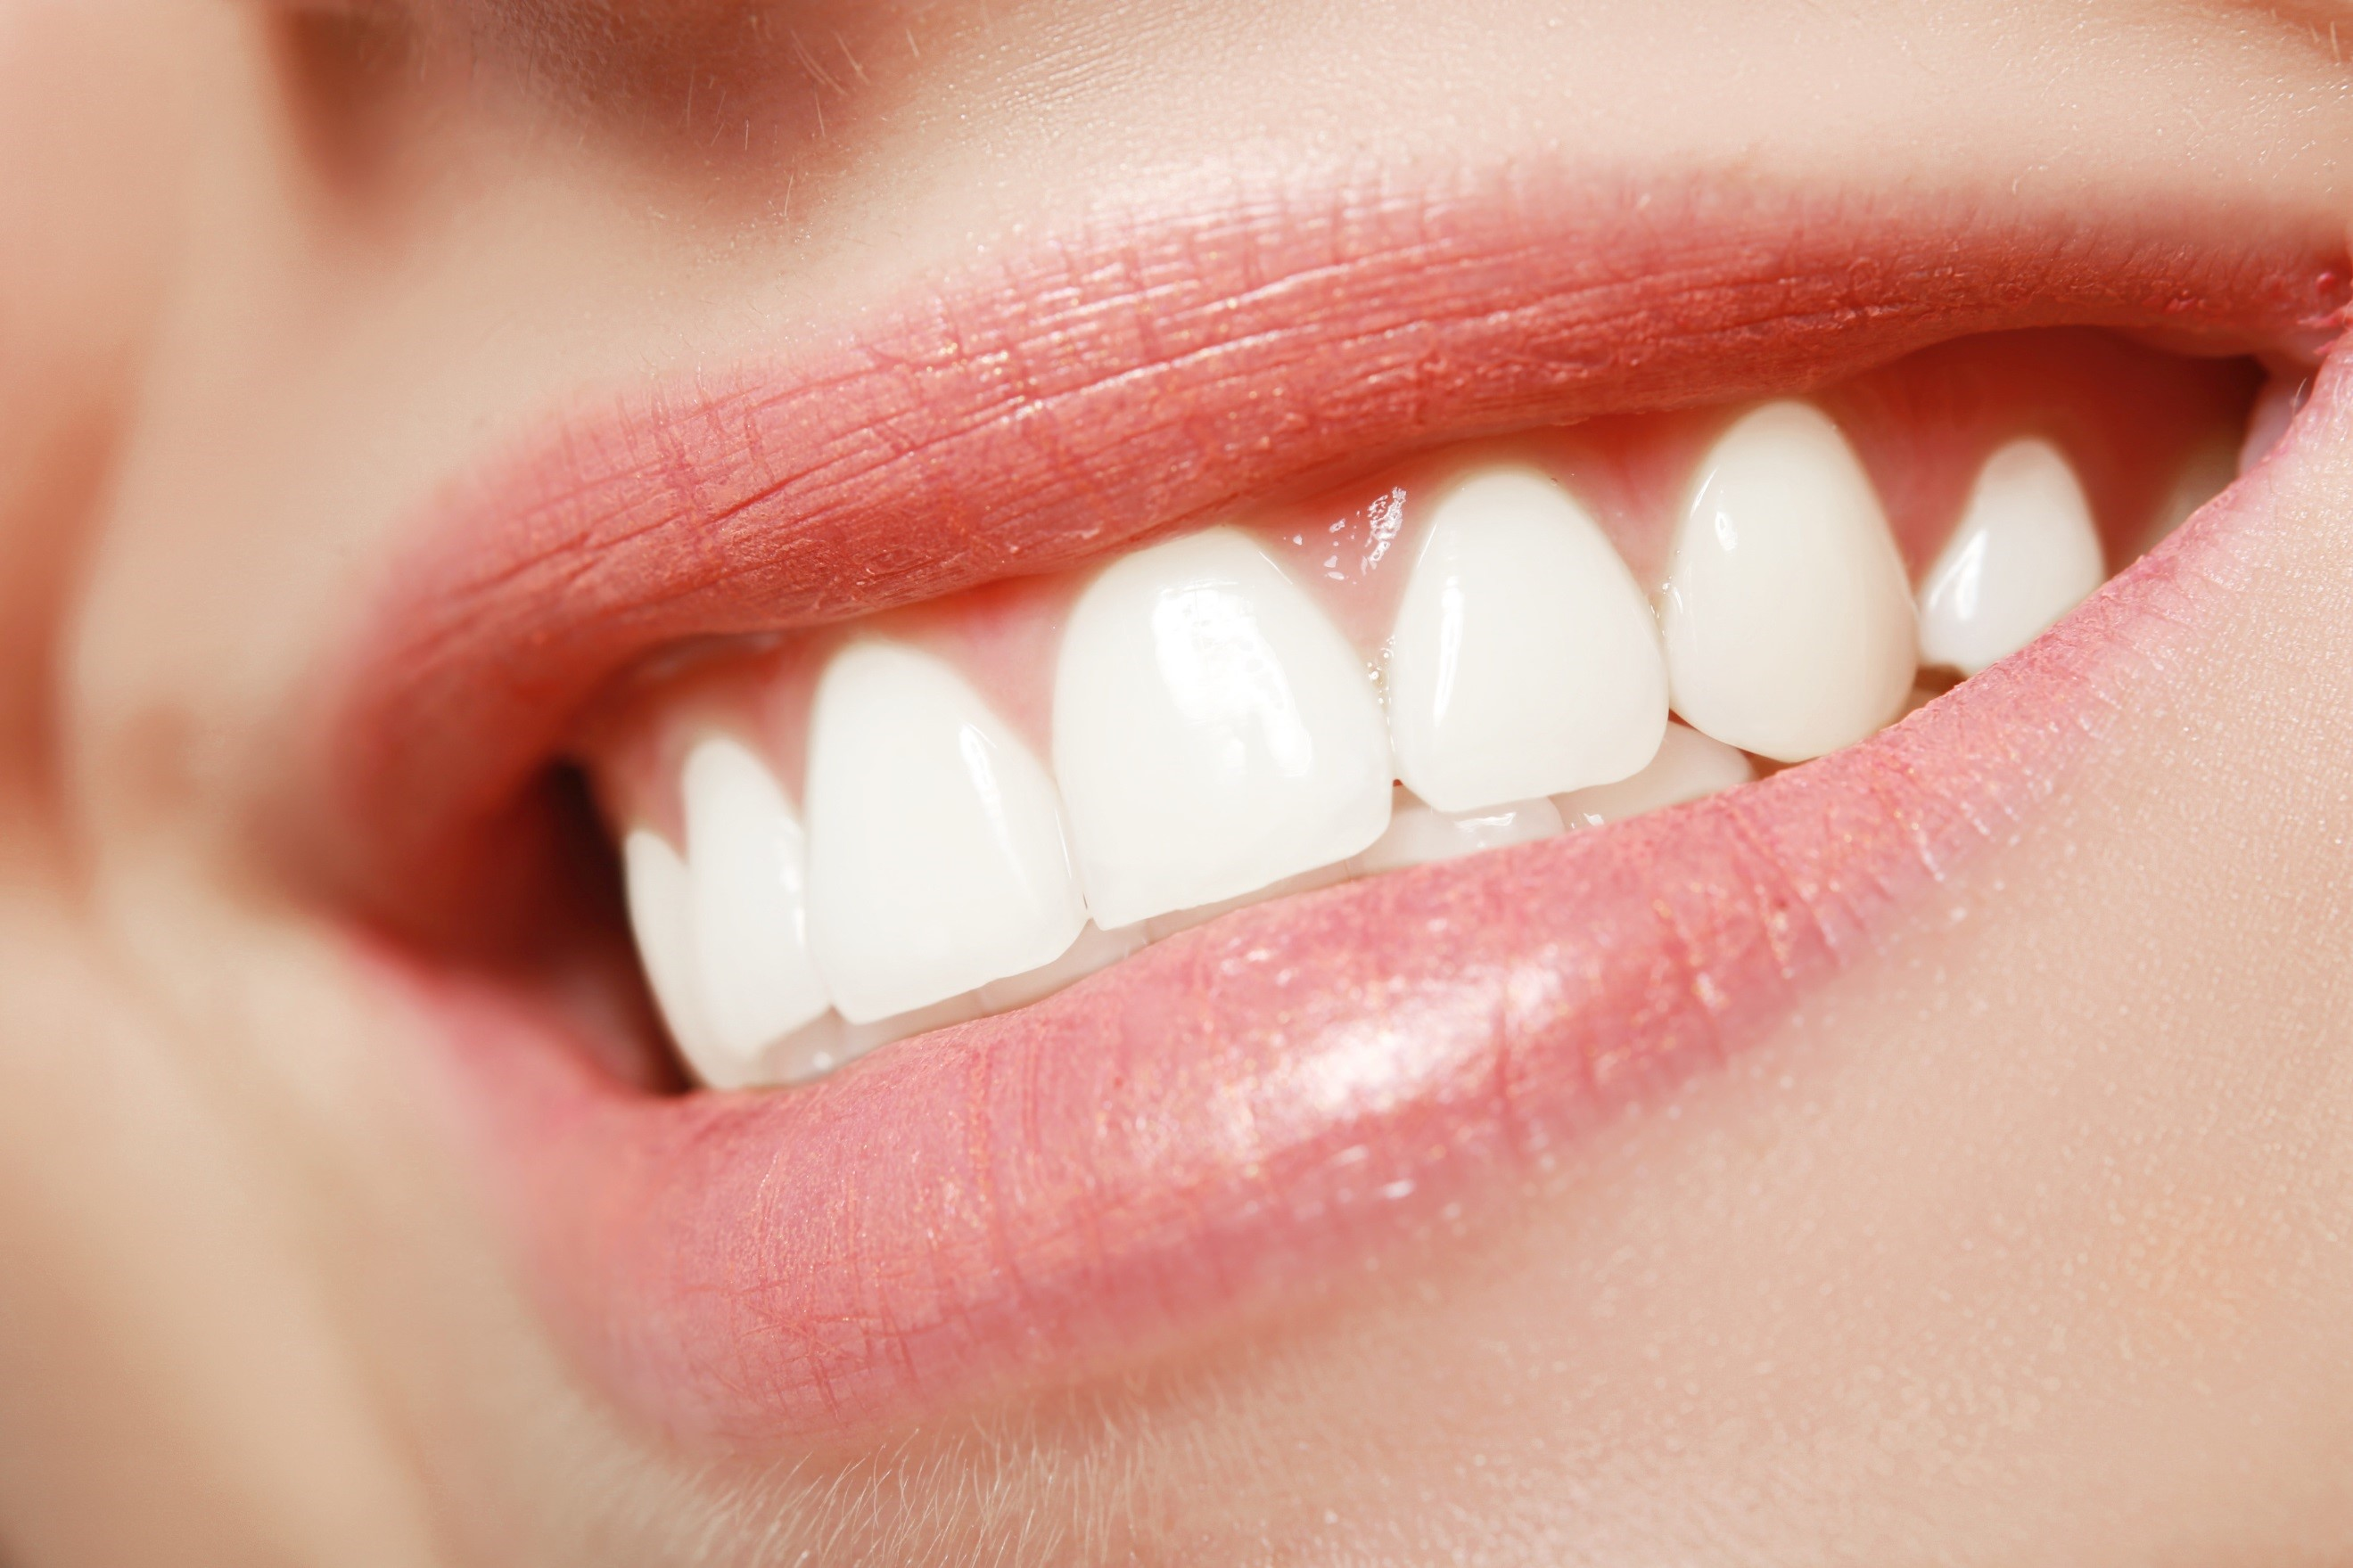 Porcelain Veneers in Towson Can Give You a Straight Smile